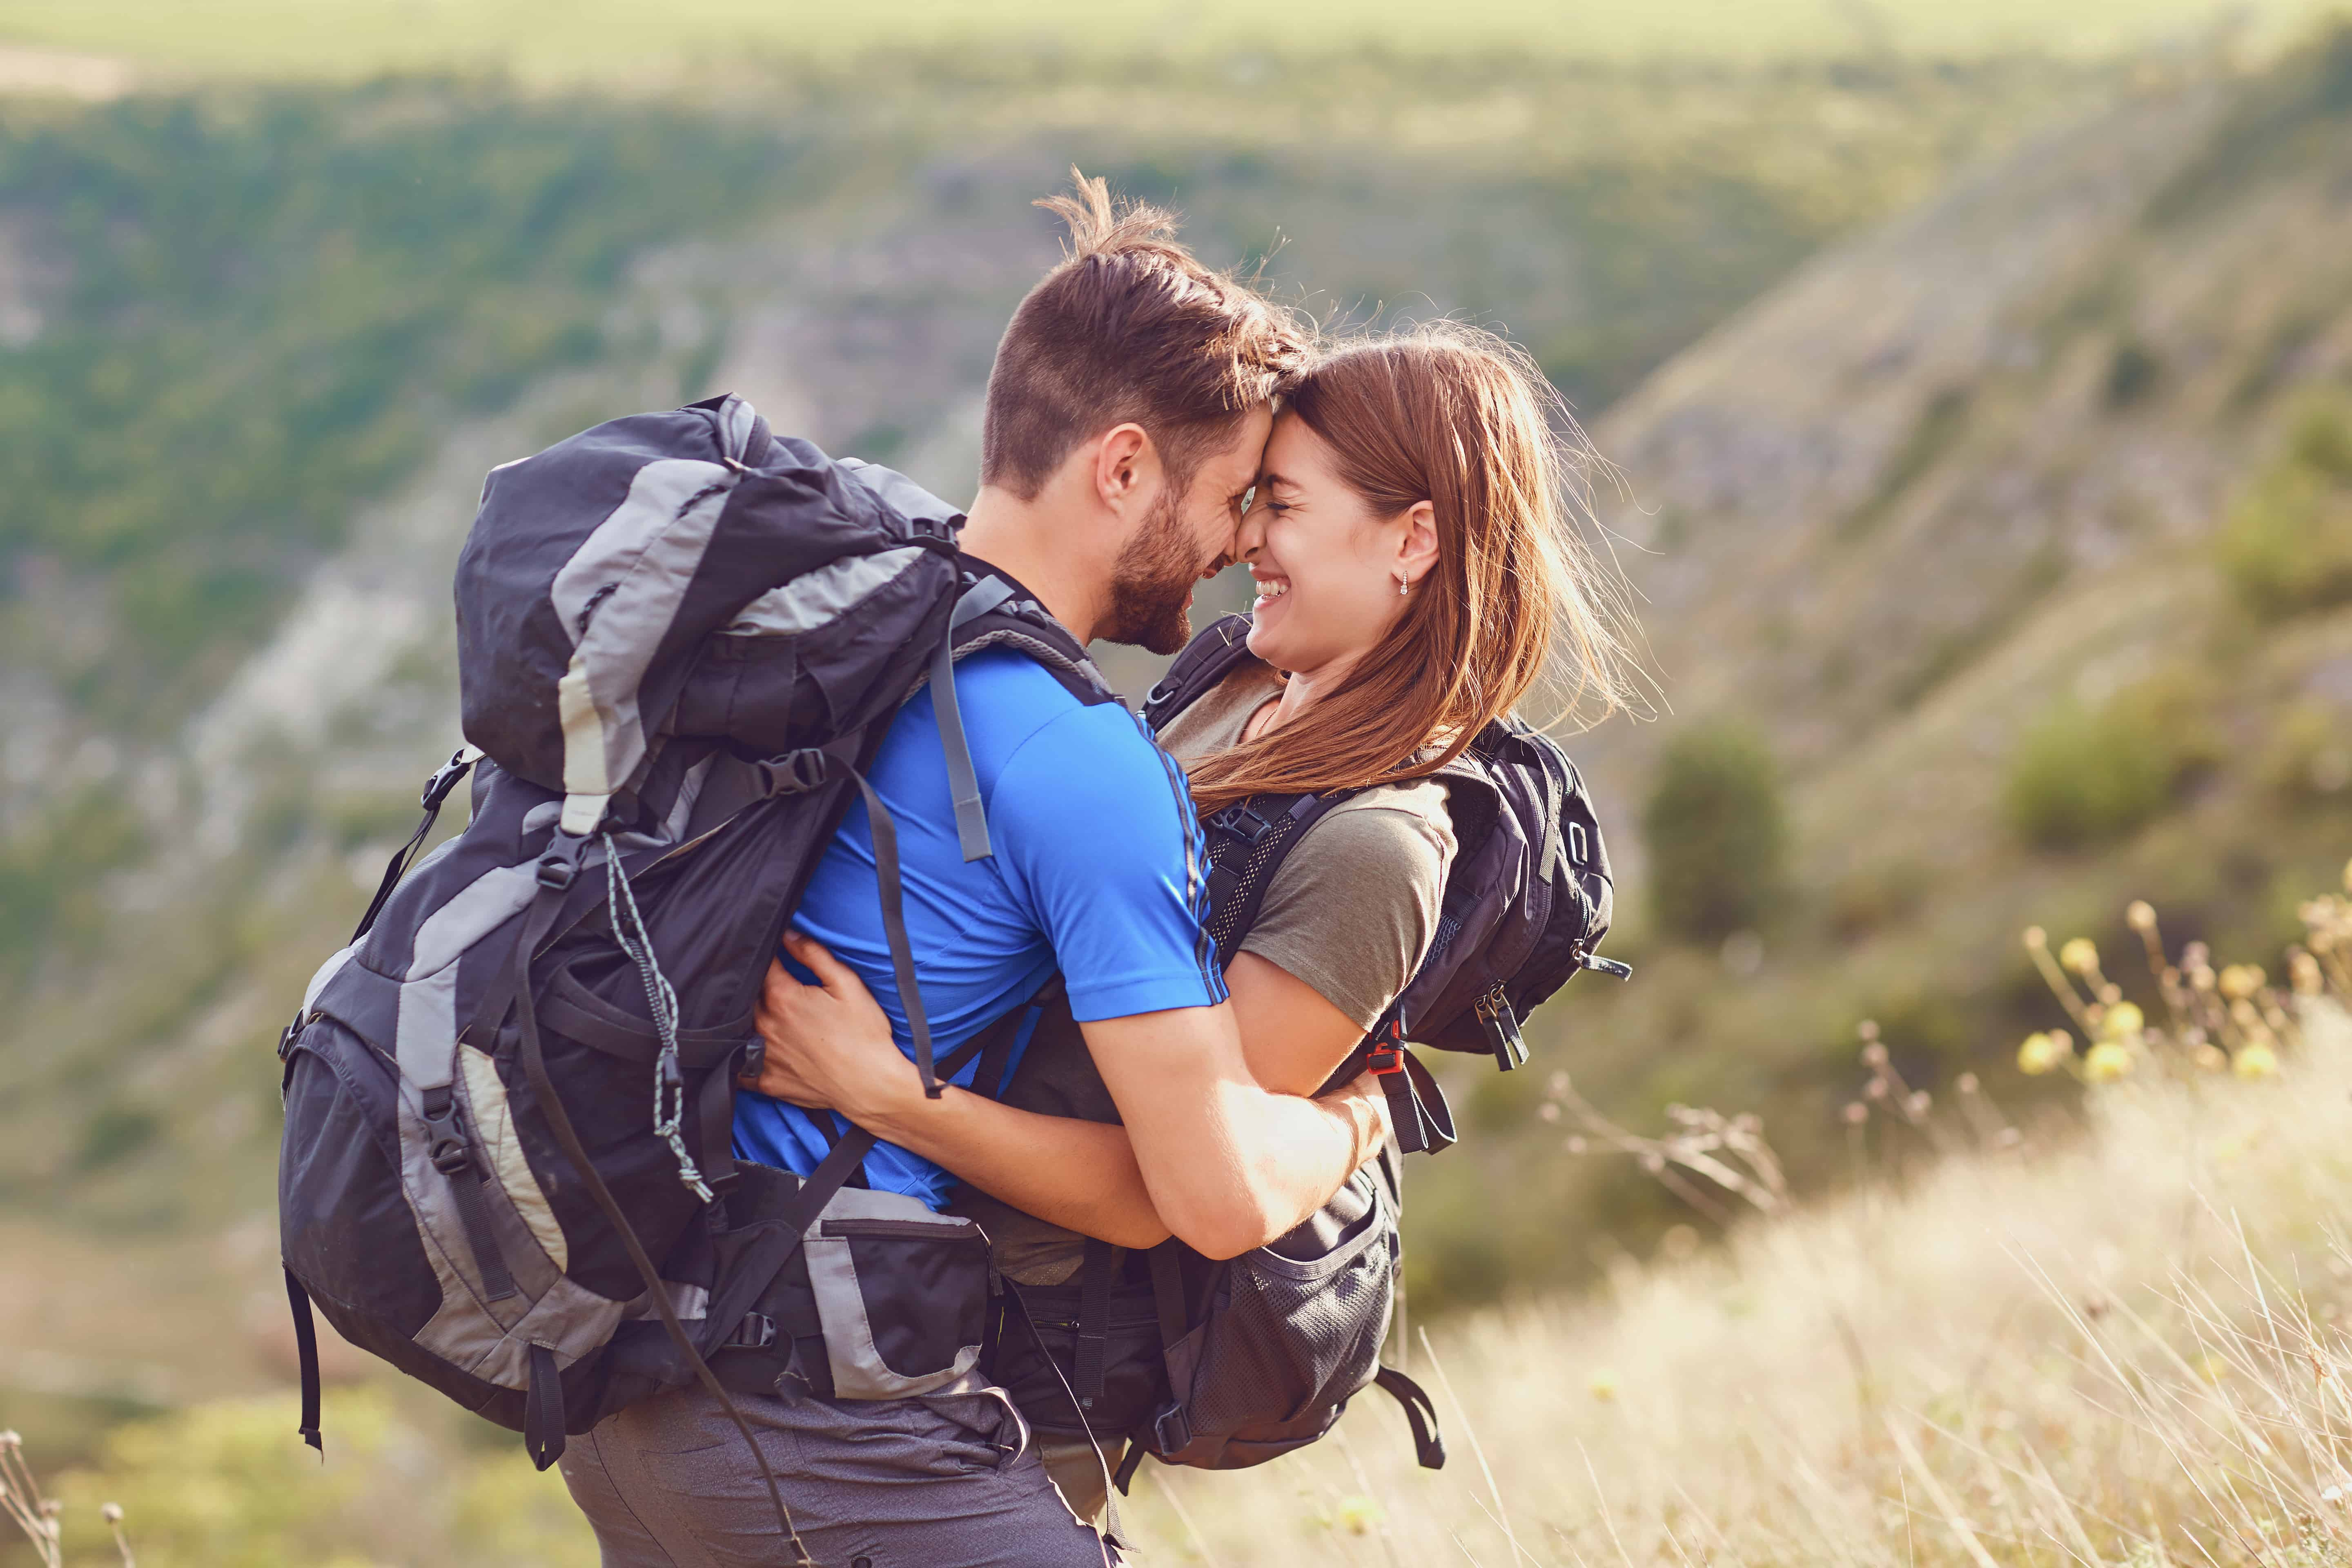 Hiking & Camping Gift Ideas for HER